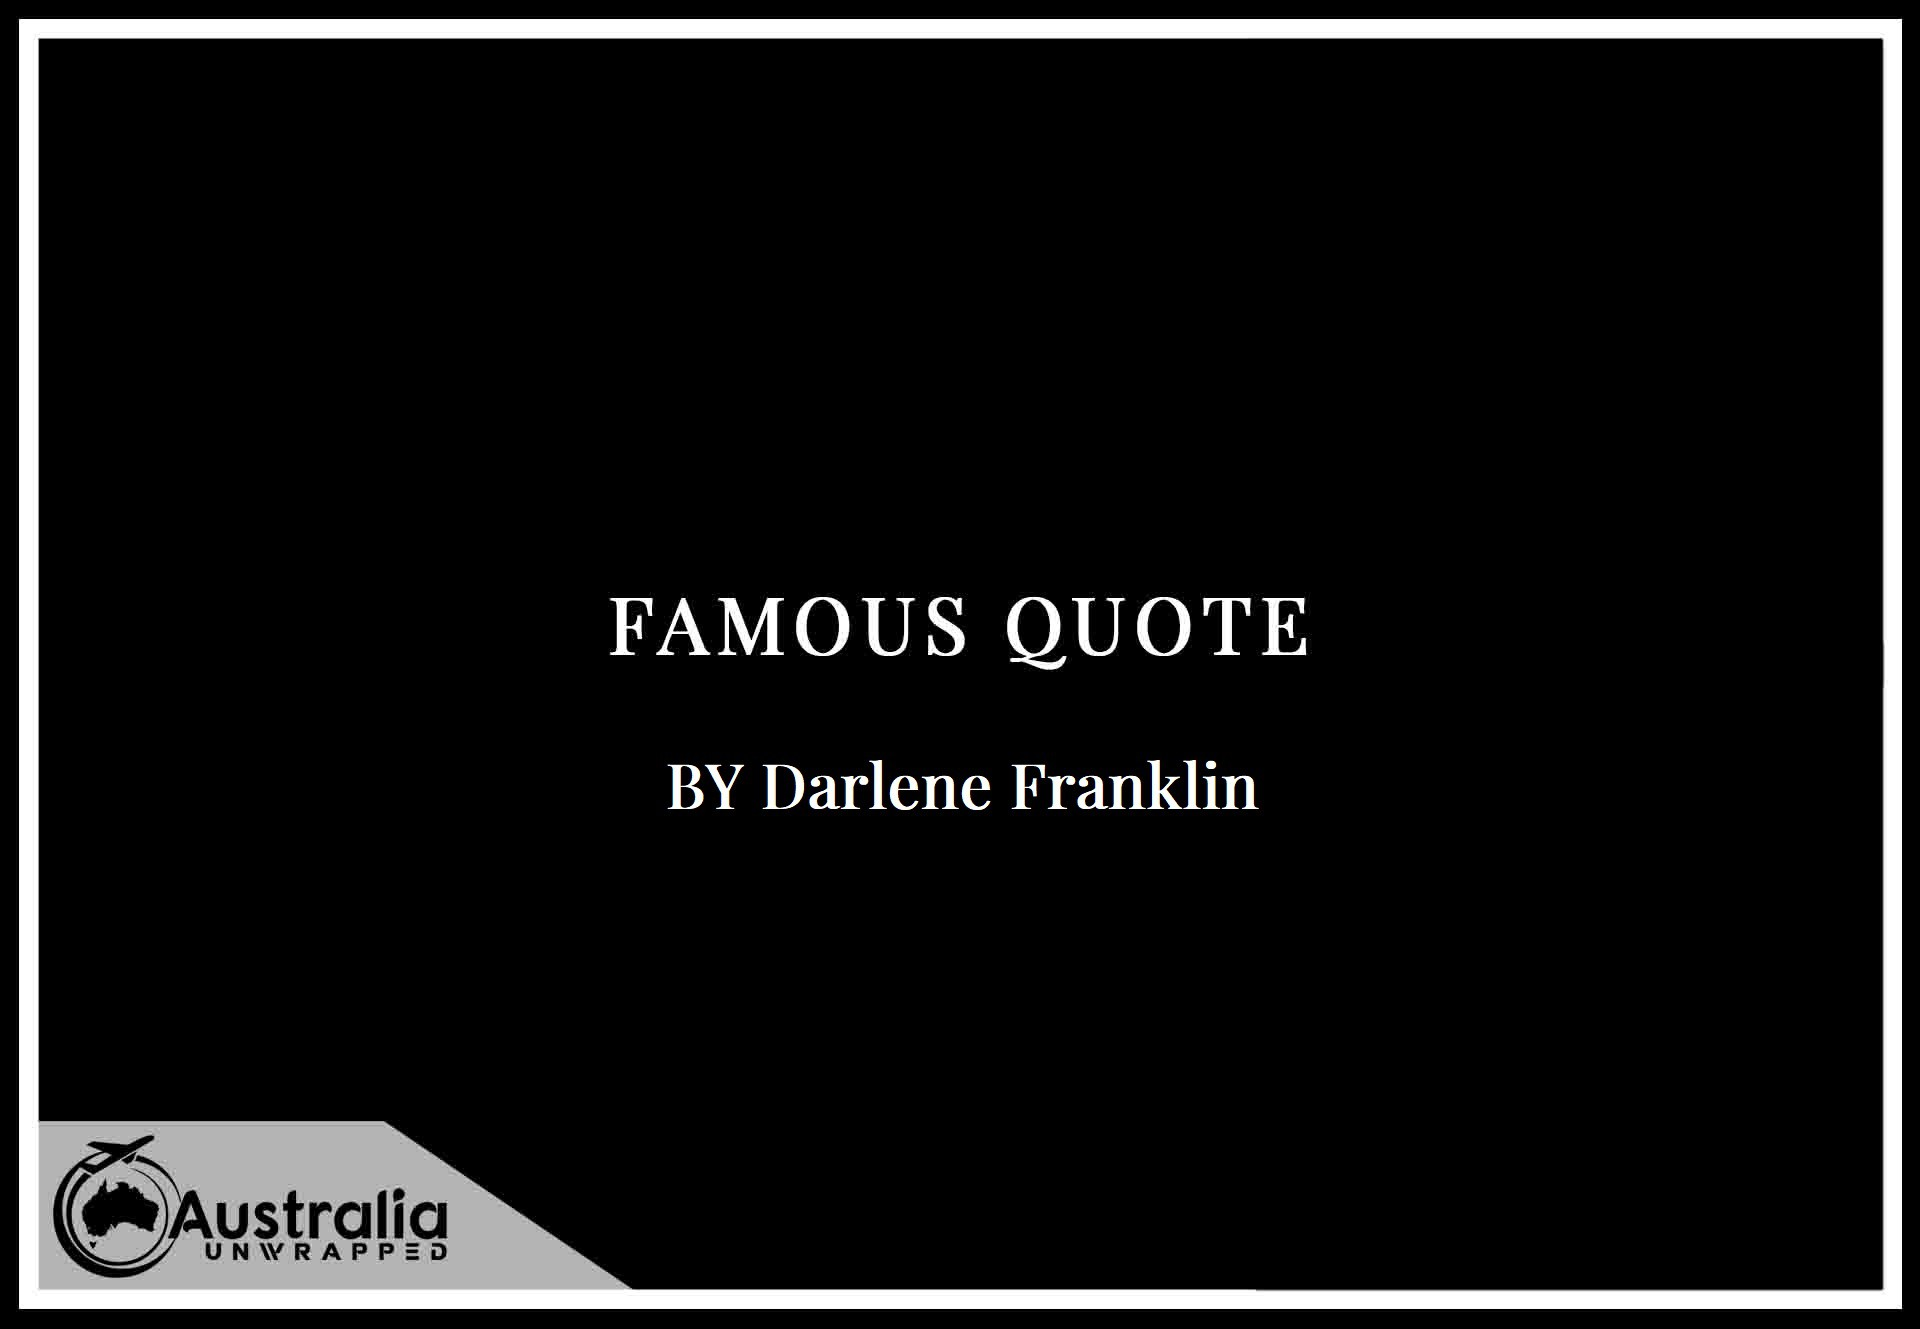 Top 1 Famous Quotes by Author Darlene Franklin